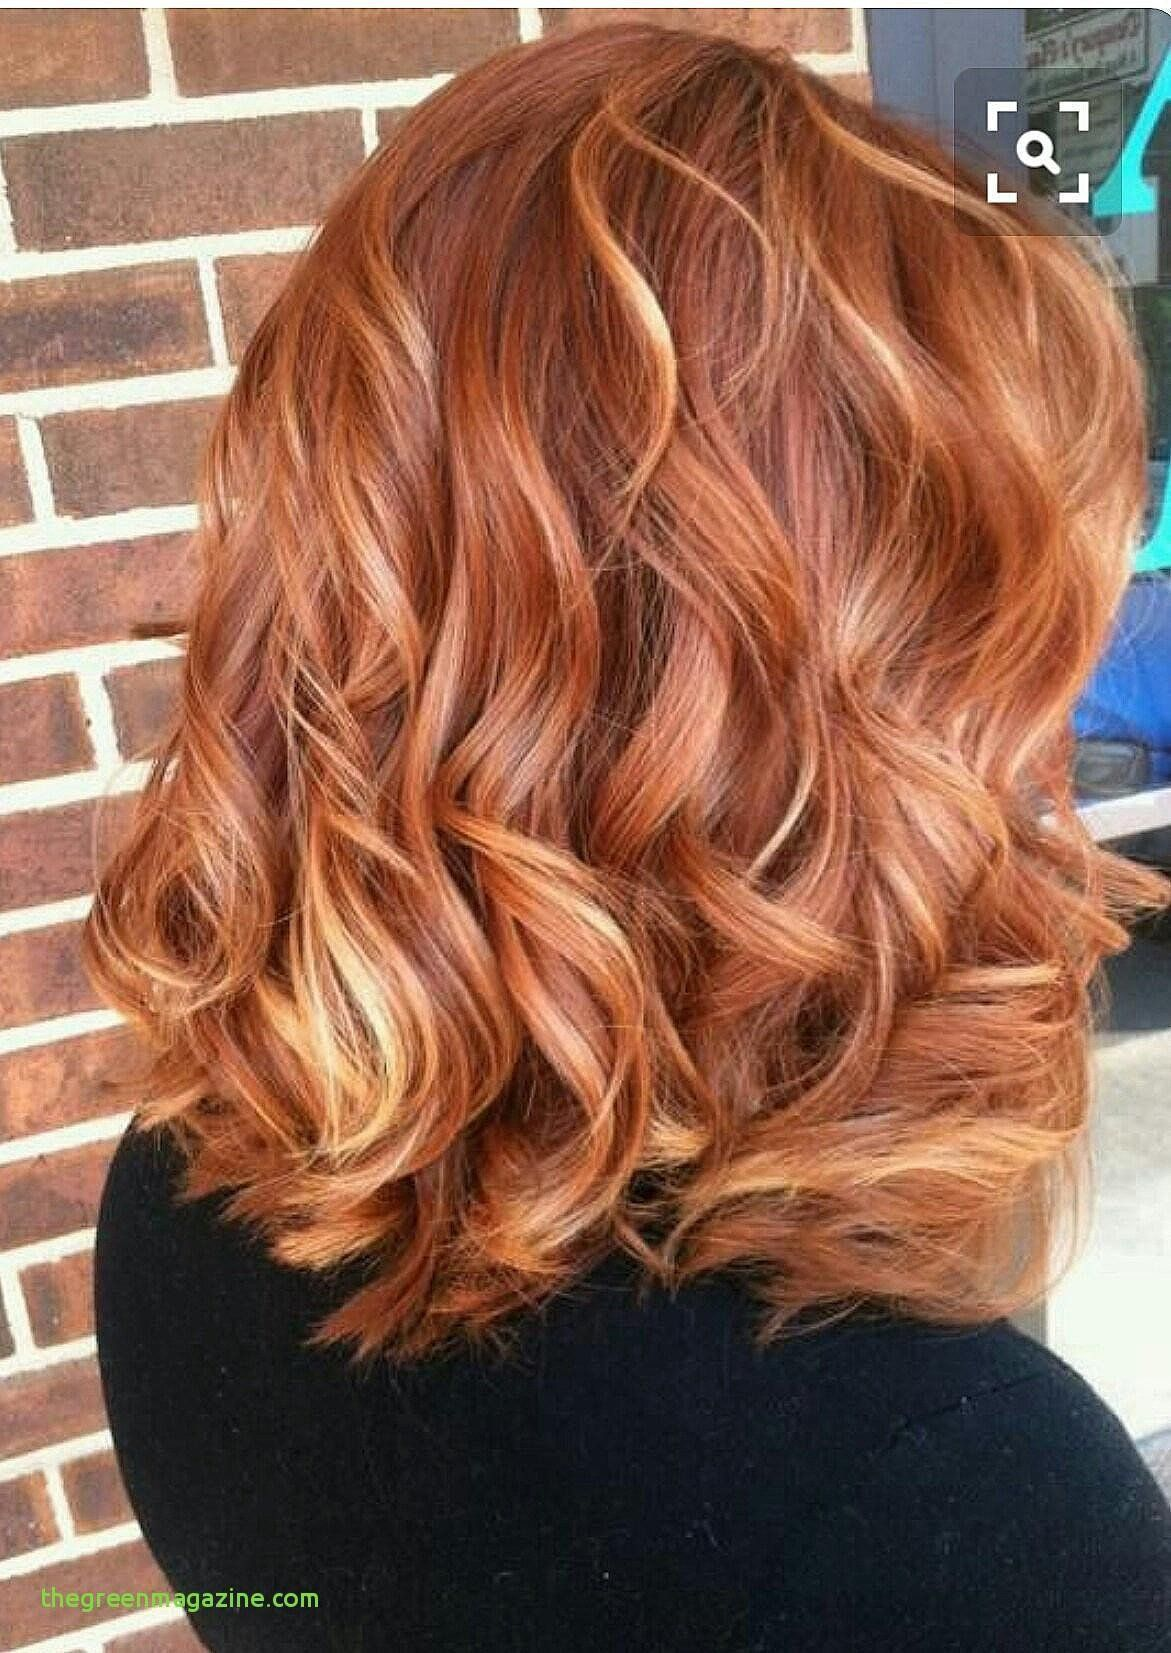 Food Coloring Hair Dye Unique Pixel Hair Coloring In 2020 Shades Of Red Hair Hair Color Pictures Copper Brown Hair